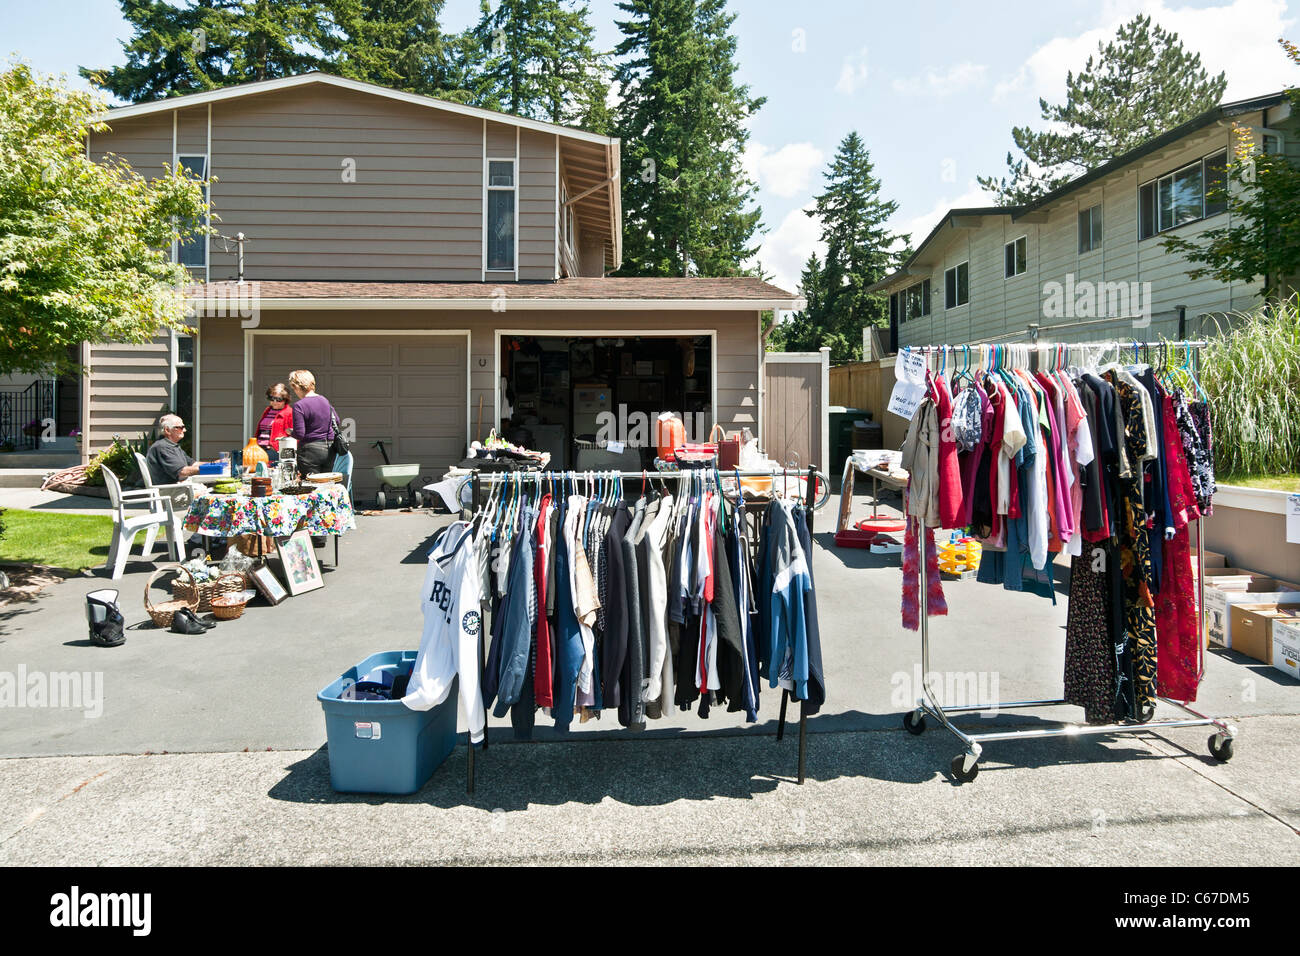 Garage Yard Sale Used Clothes Artwork Dishes Bric A Brac Kitsch In Driveway Outside Suburban House Edmonds Washington